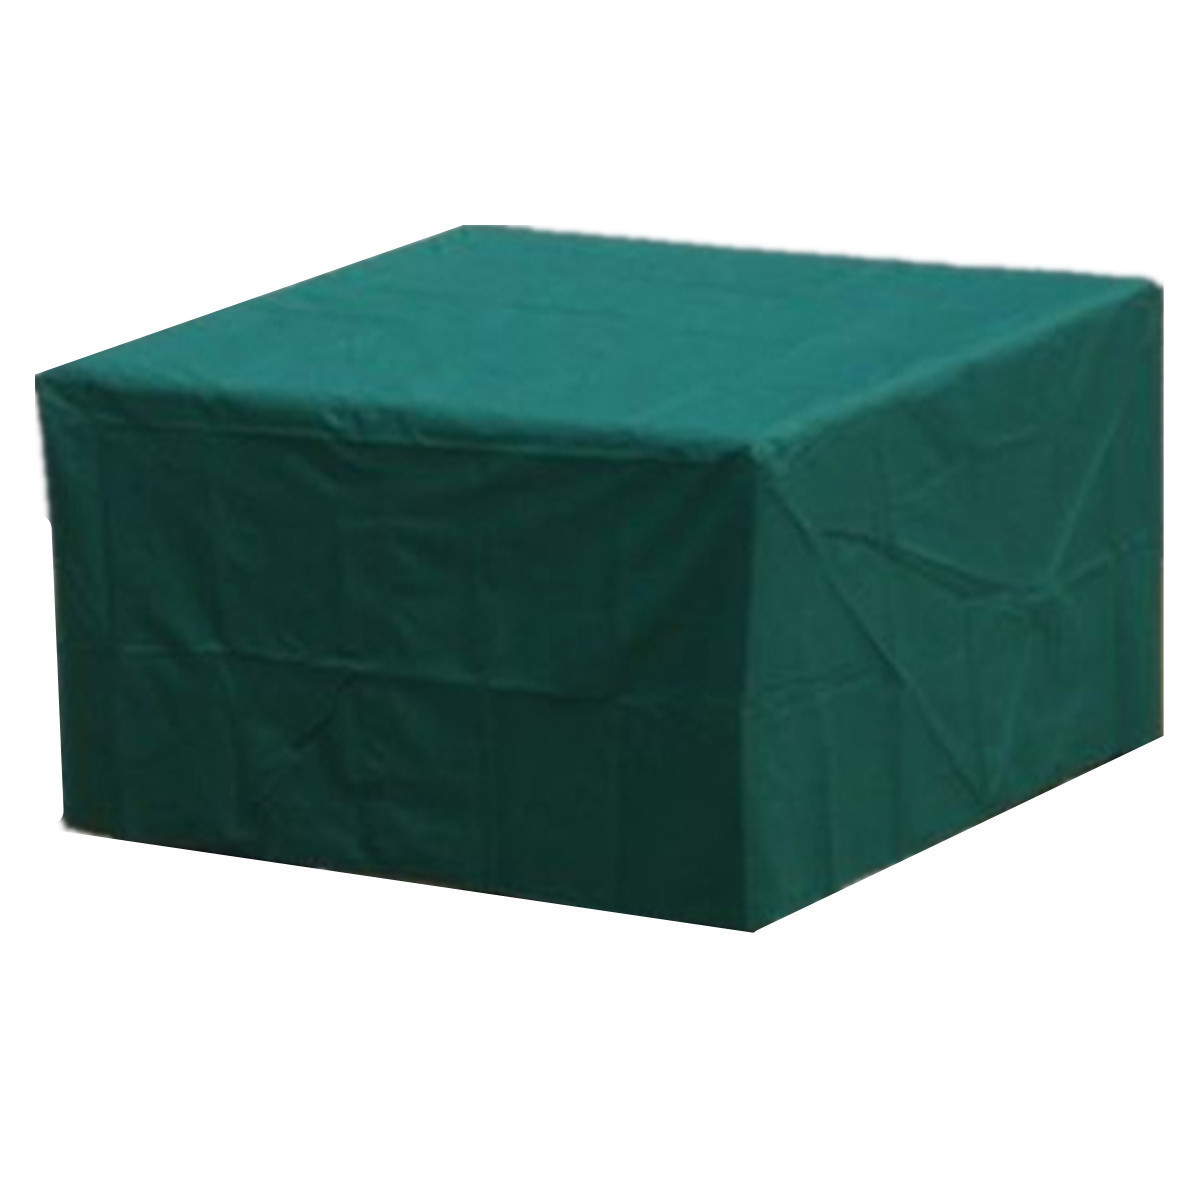 Captivating Best Promotion 210x193x97cm Waterproof Outdoor Garden Patio Furniture Cover  Table Chair Shelter